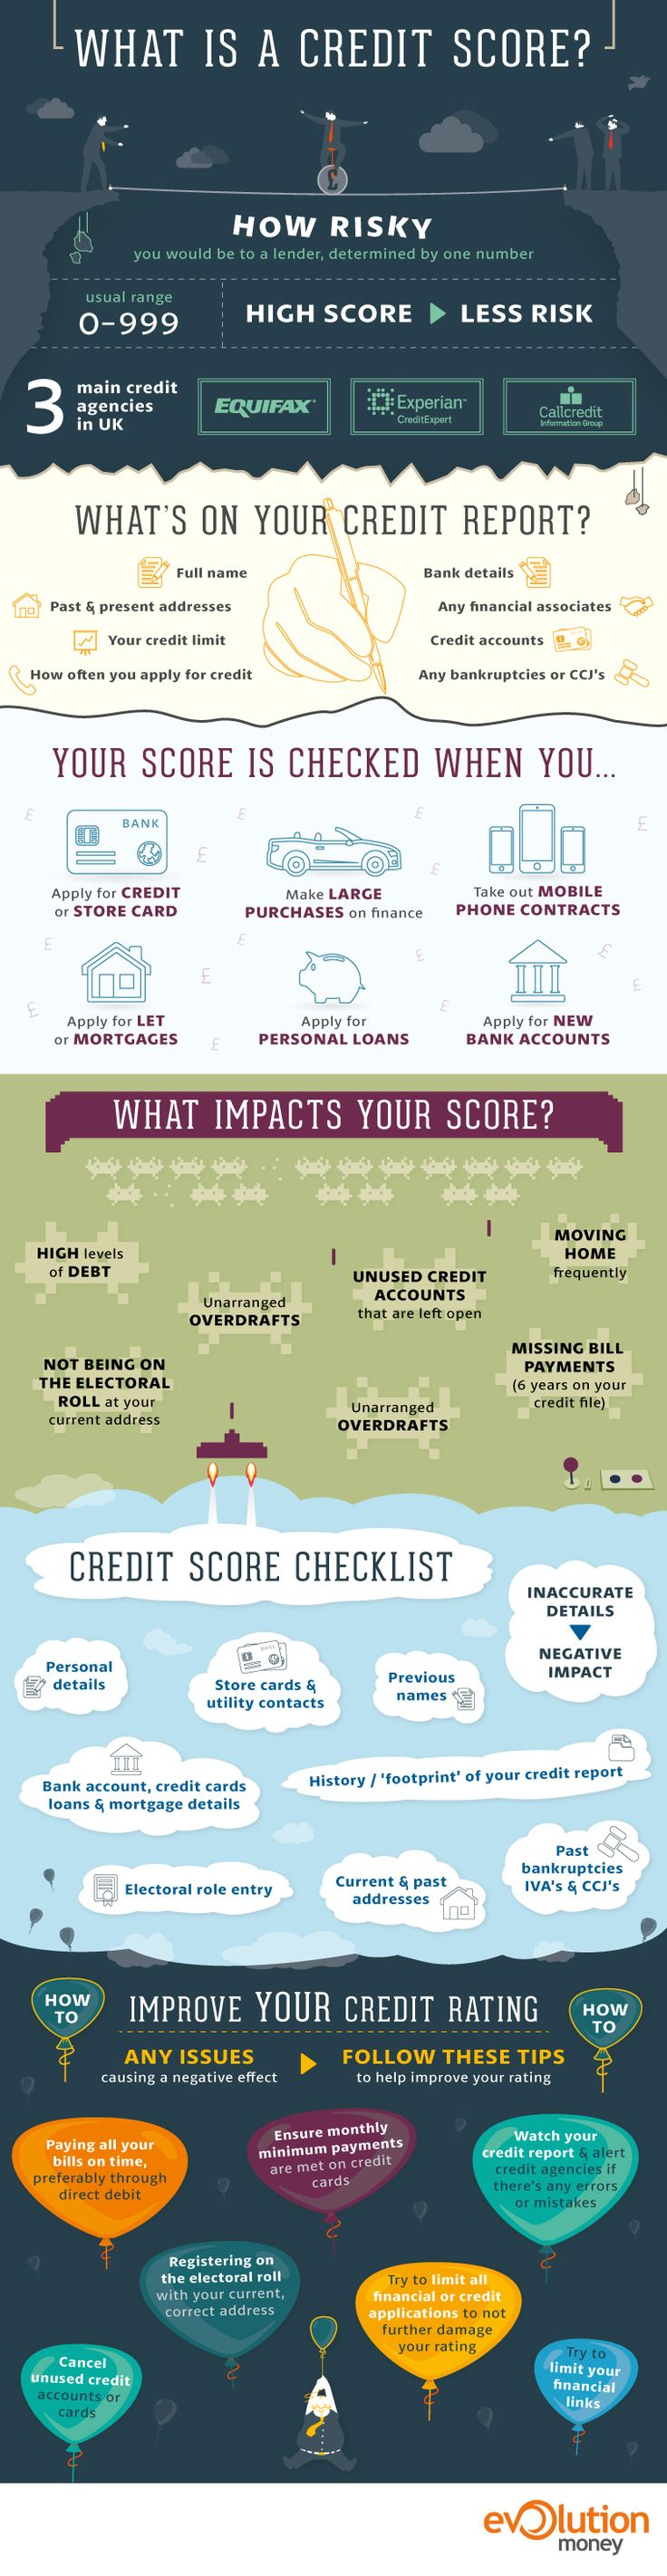 Credit Scores What Are They Infographic Credit Score Infographic Finance Infographic Credit Score